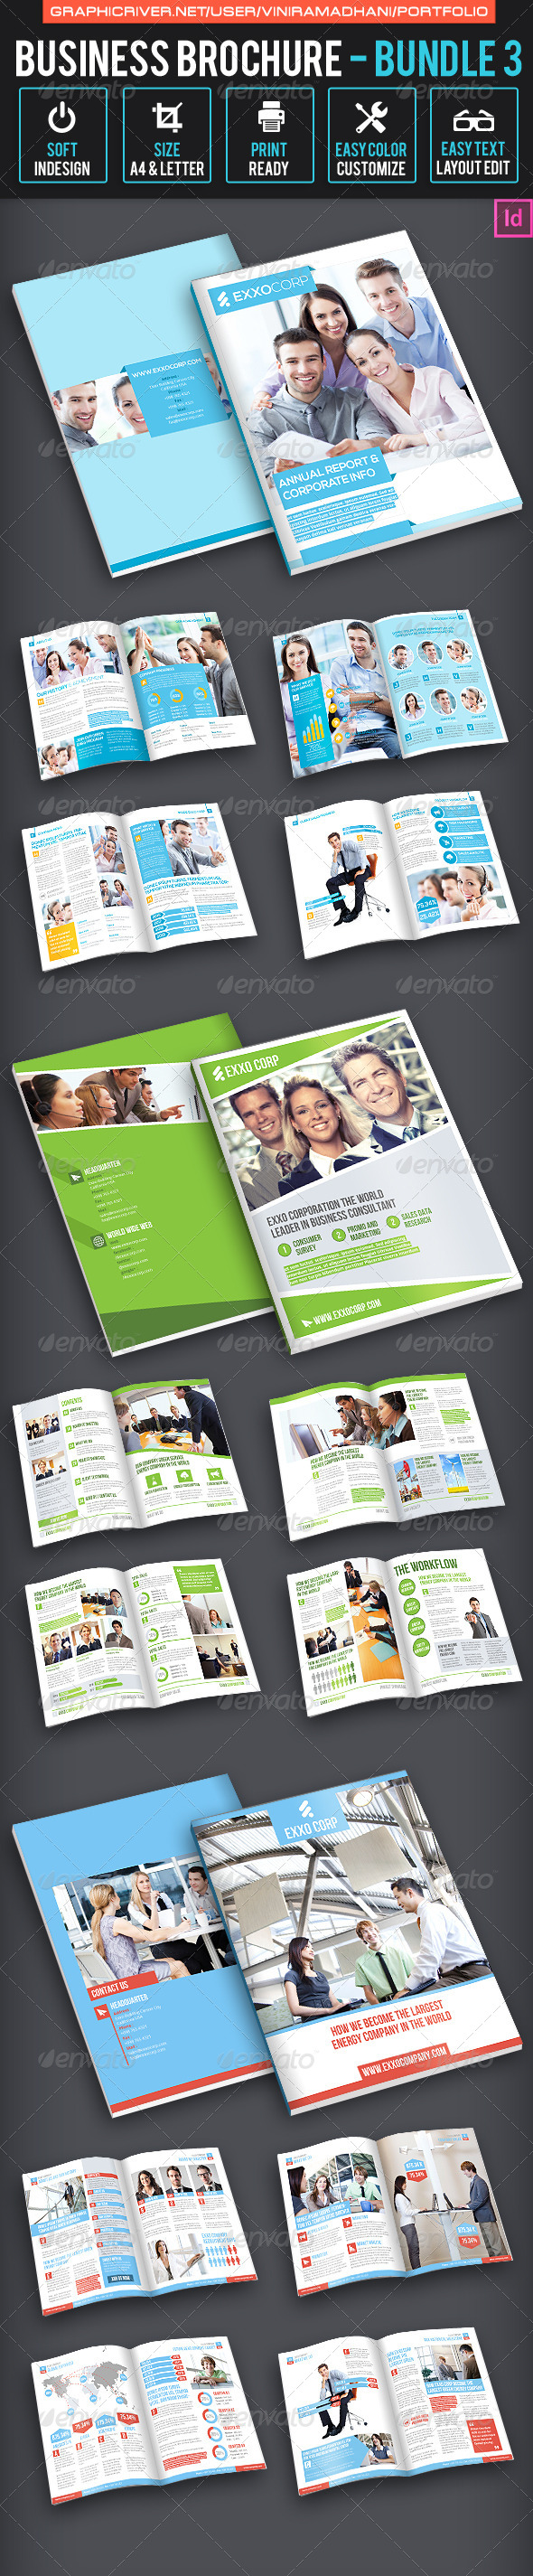 Business Brochure bundle 3